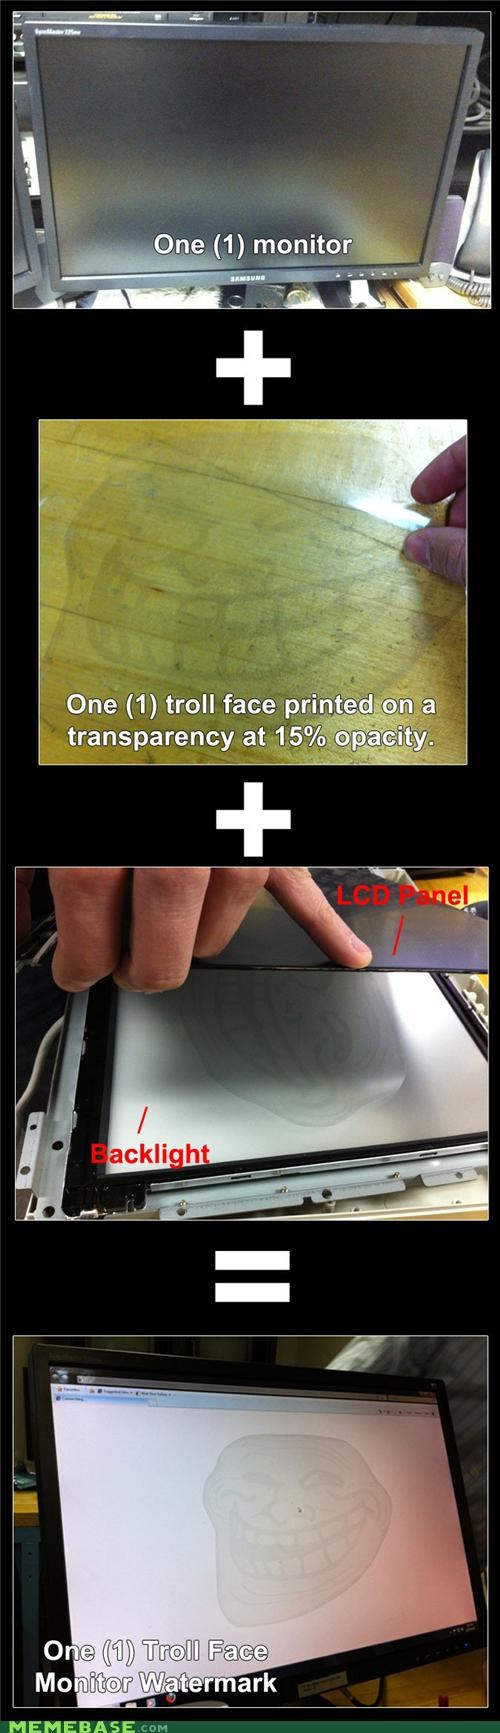 IRL monitor troll face - 4278214656